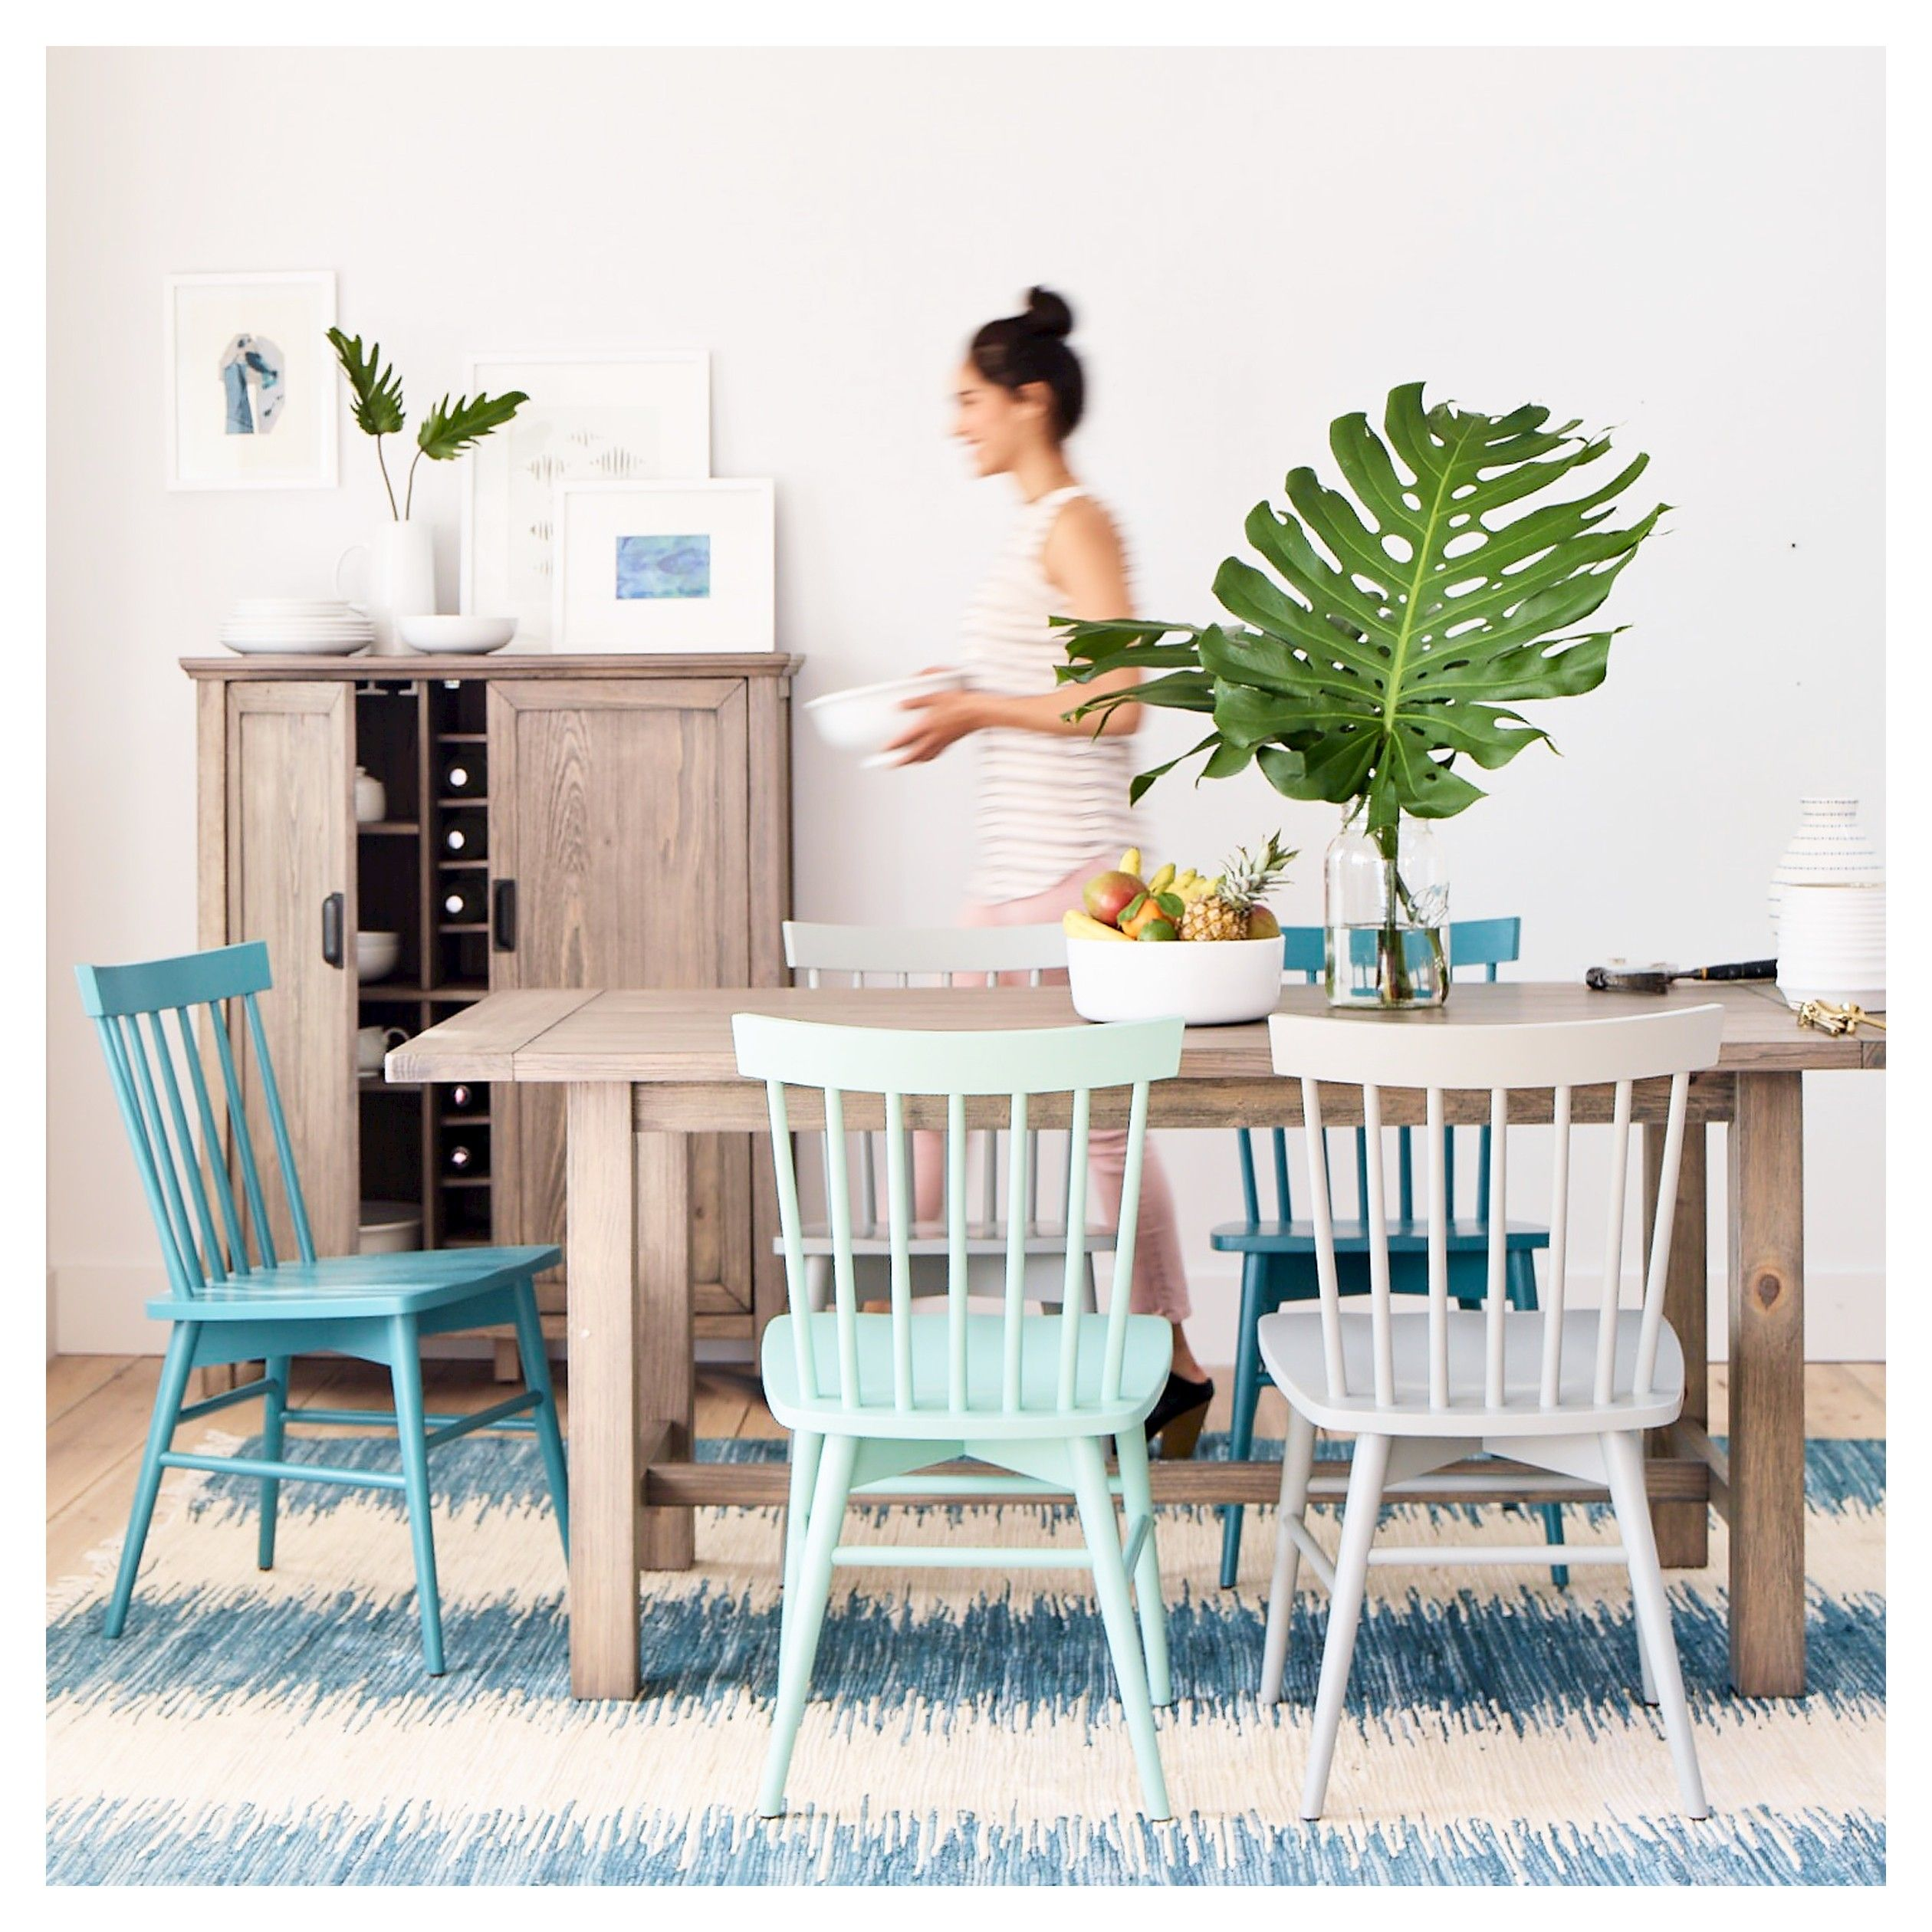 Revive your space with the Modern Dining Room & Whiteware Collection